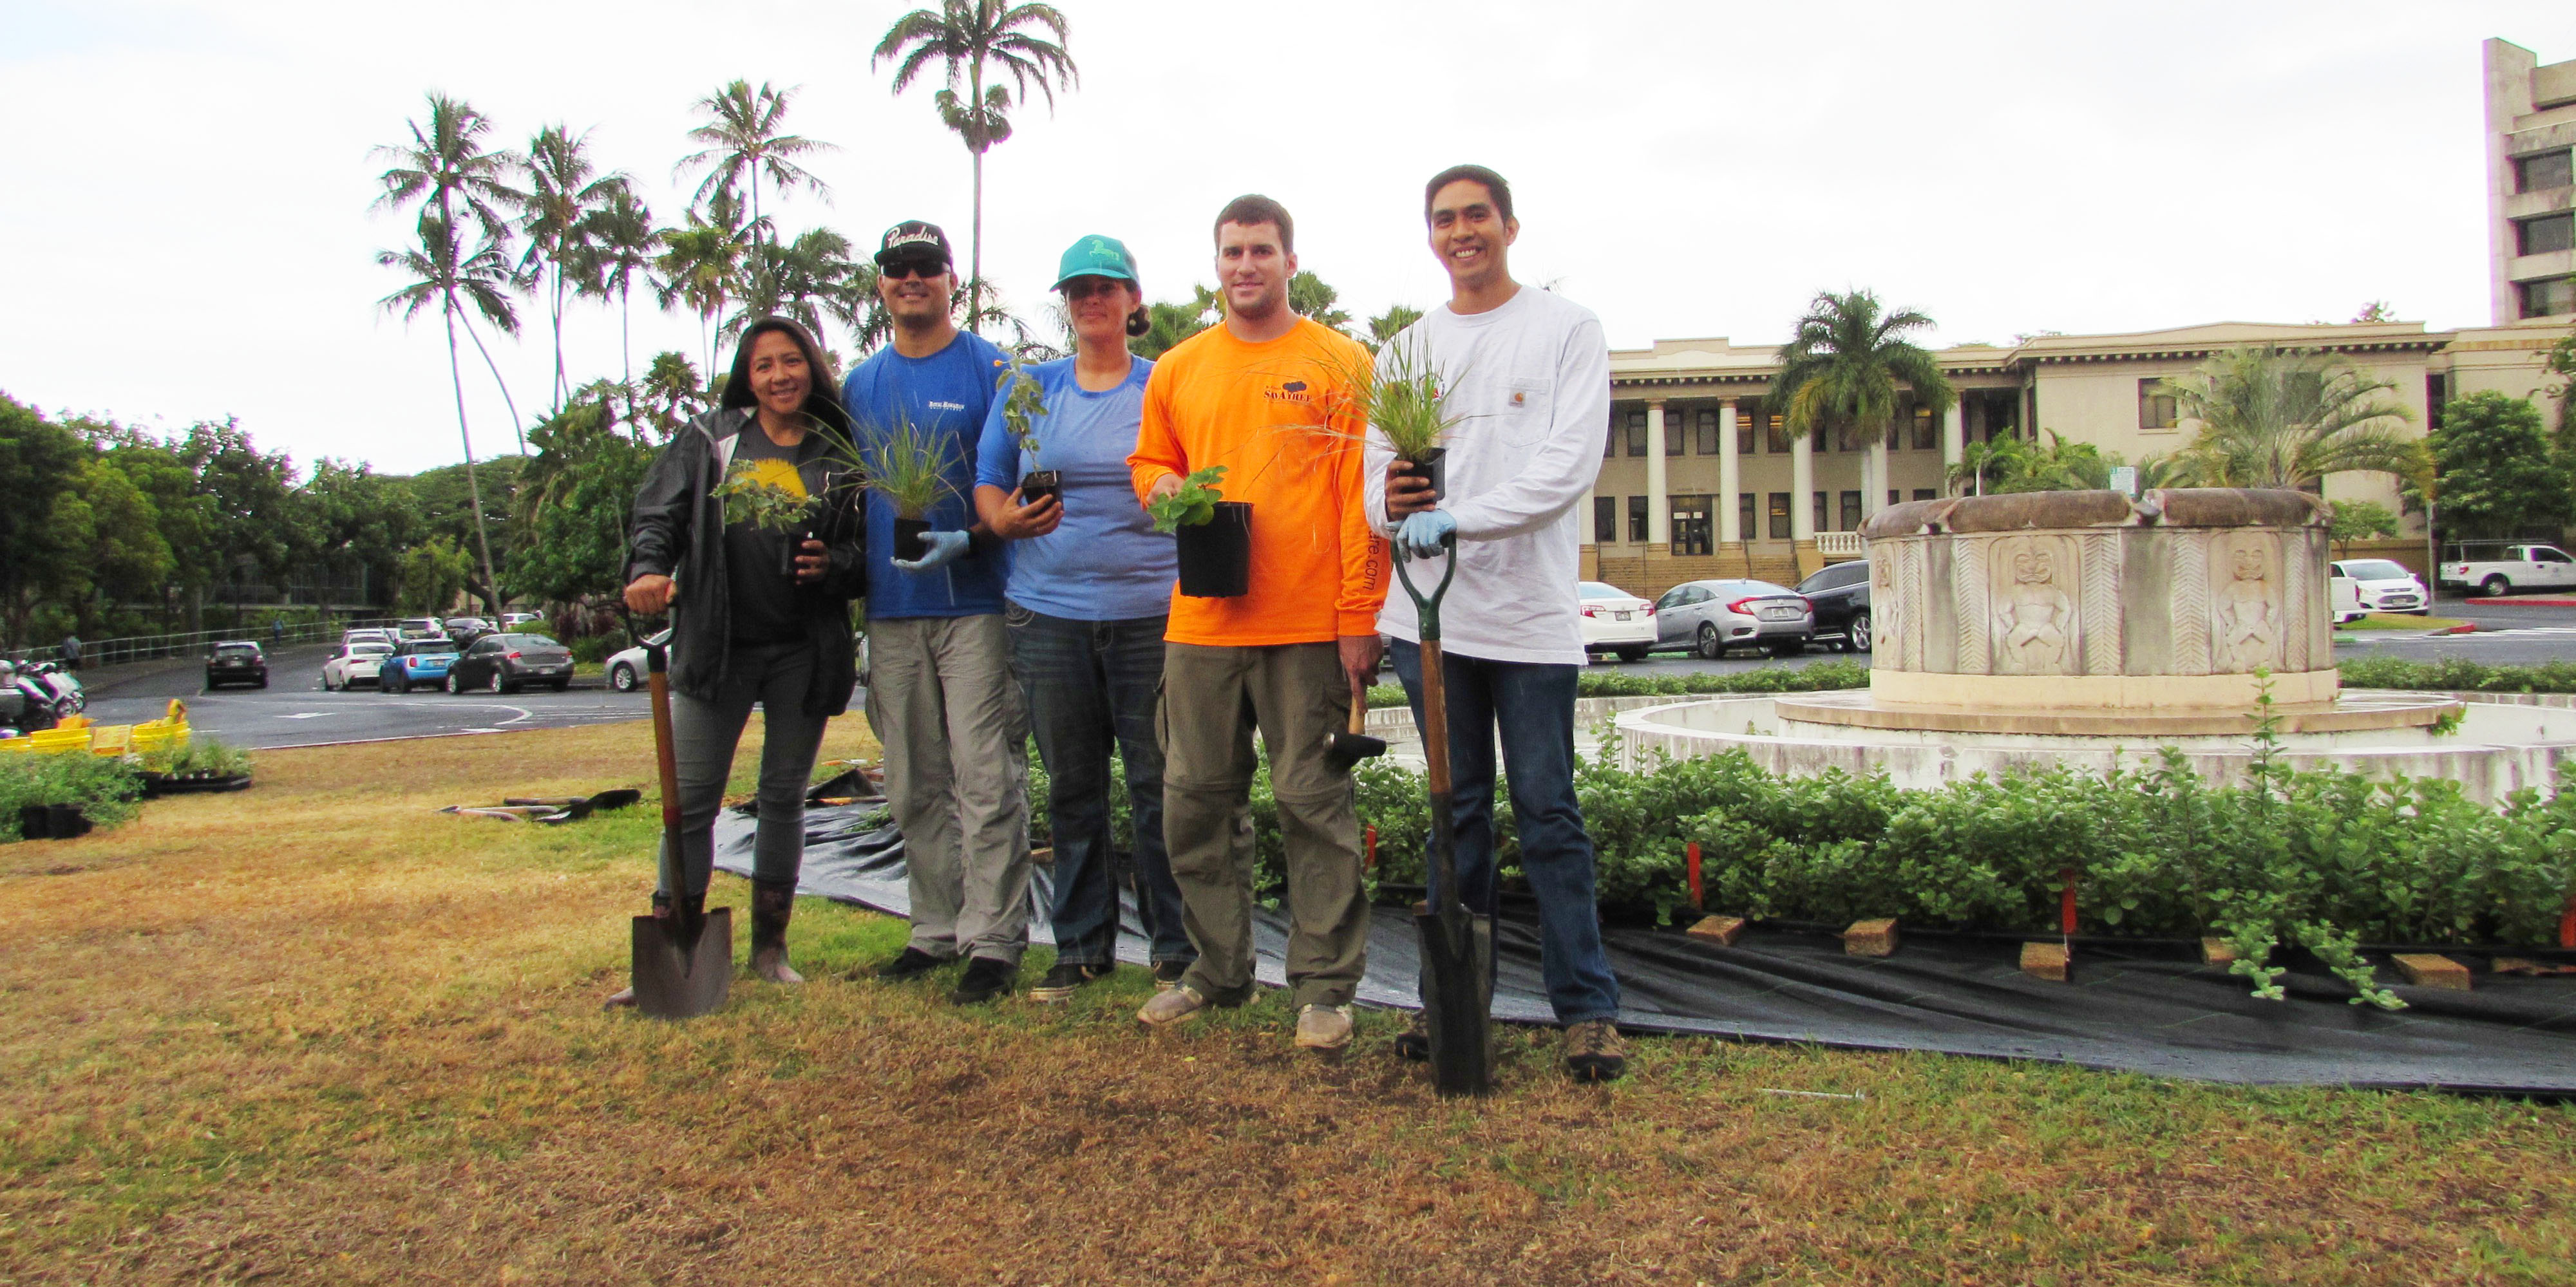 Landscaping team holding potted plants in front of Hawaii Hall at Manoa.